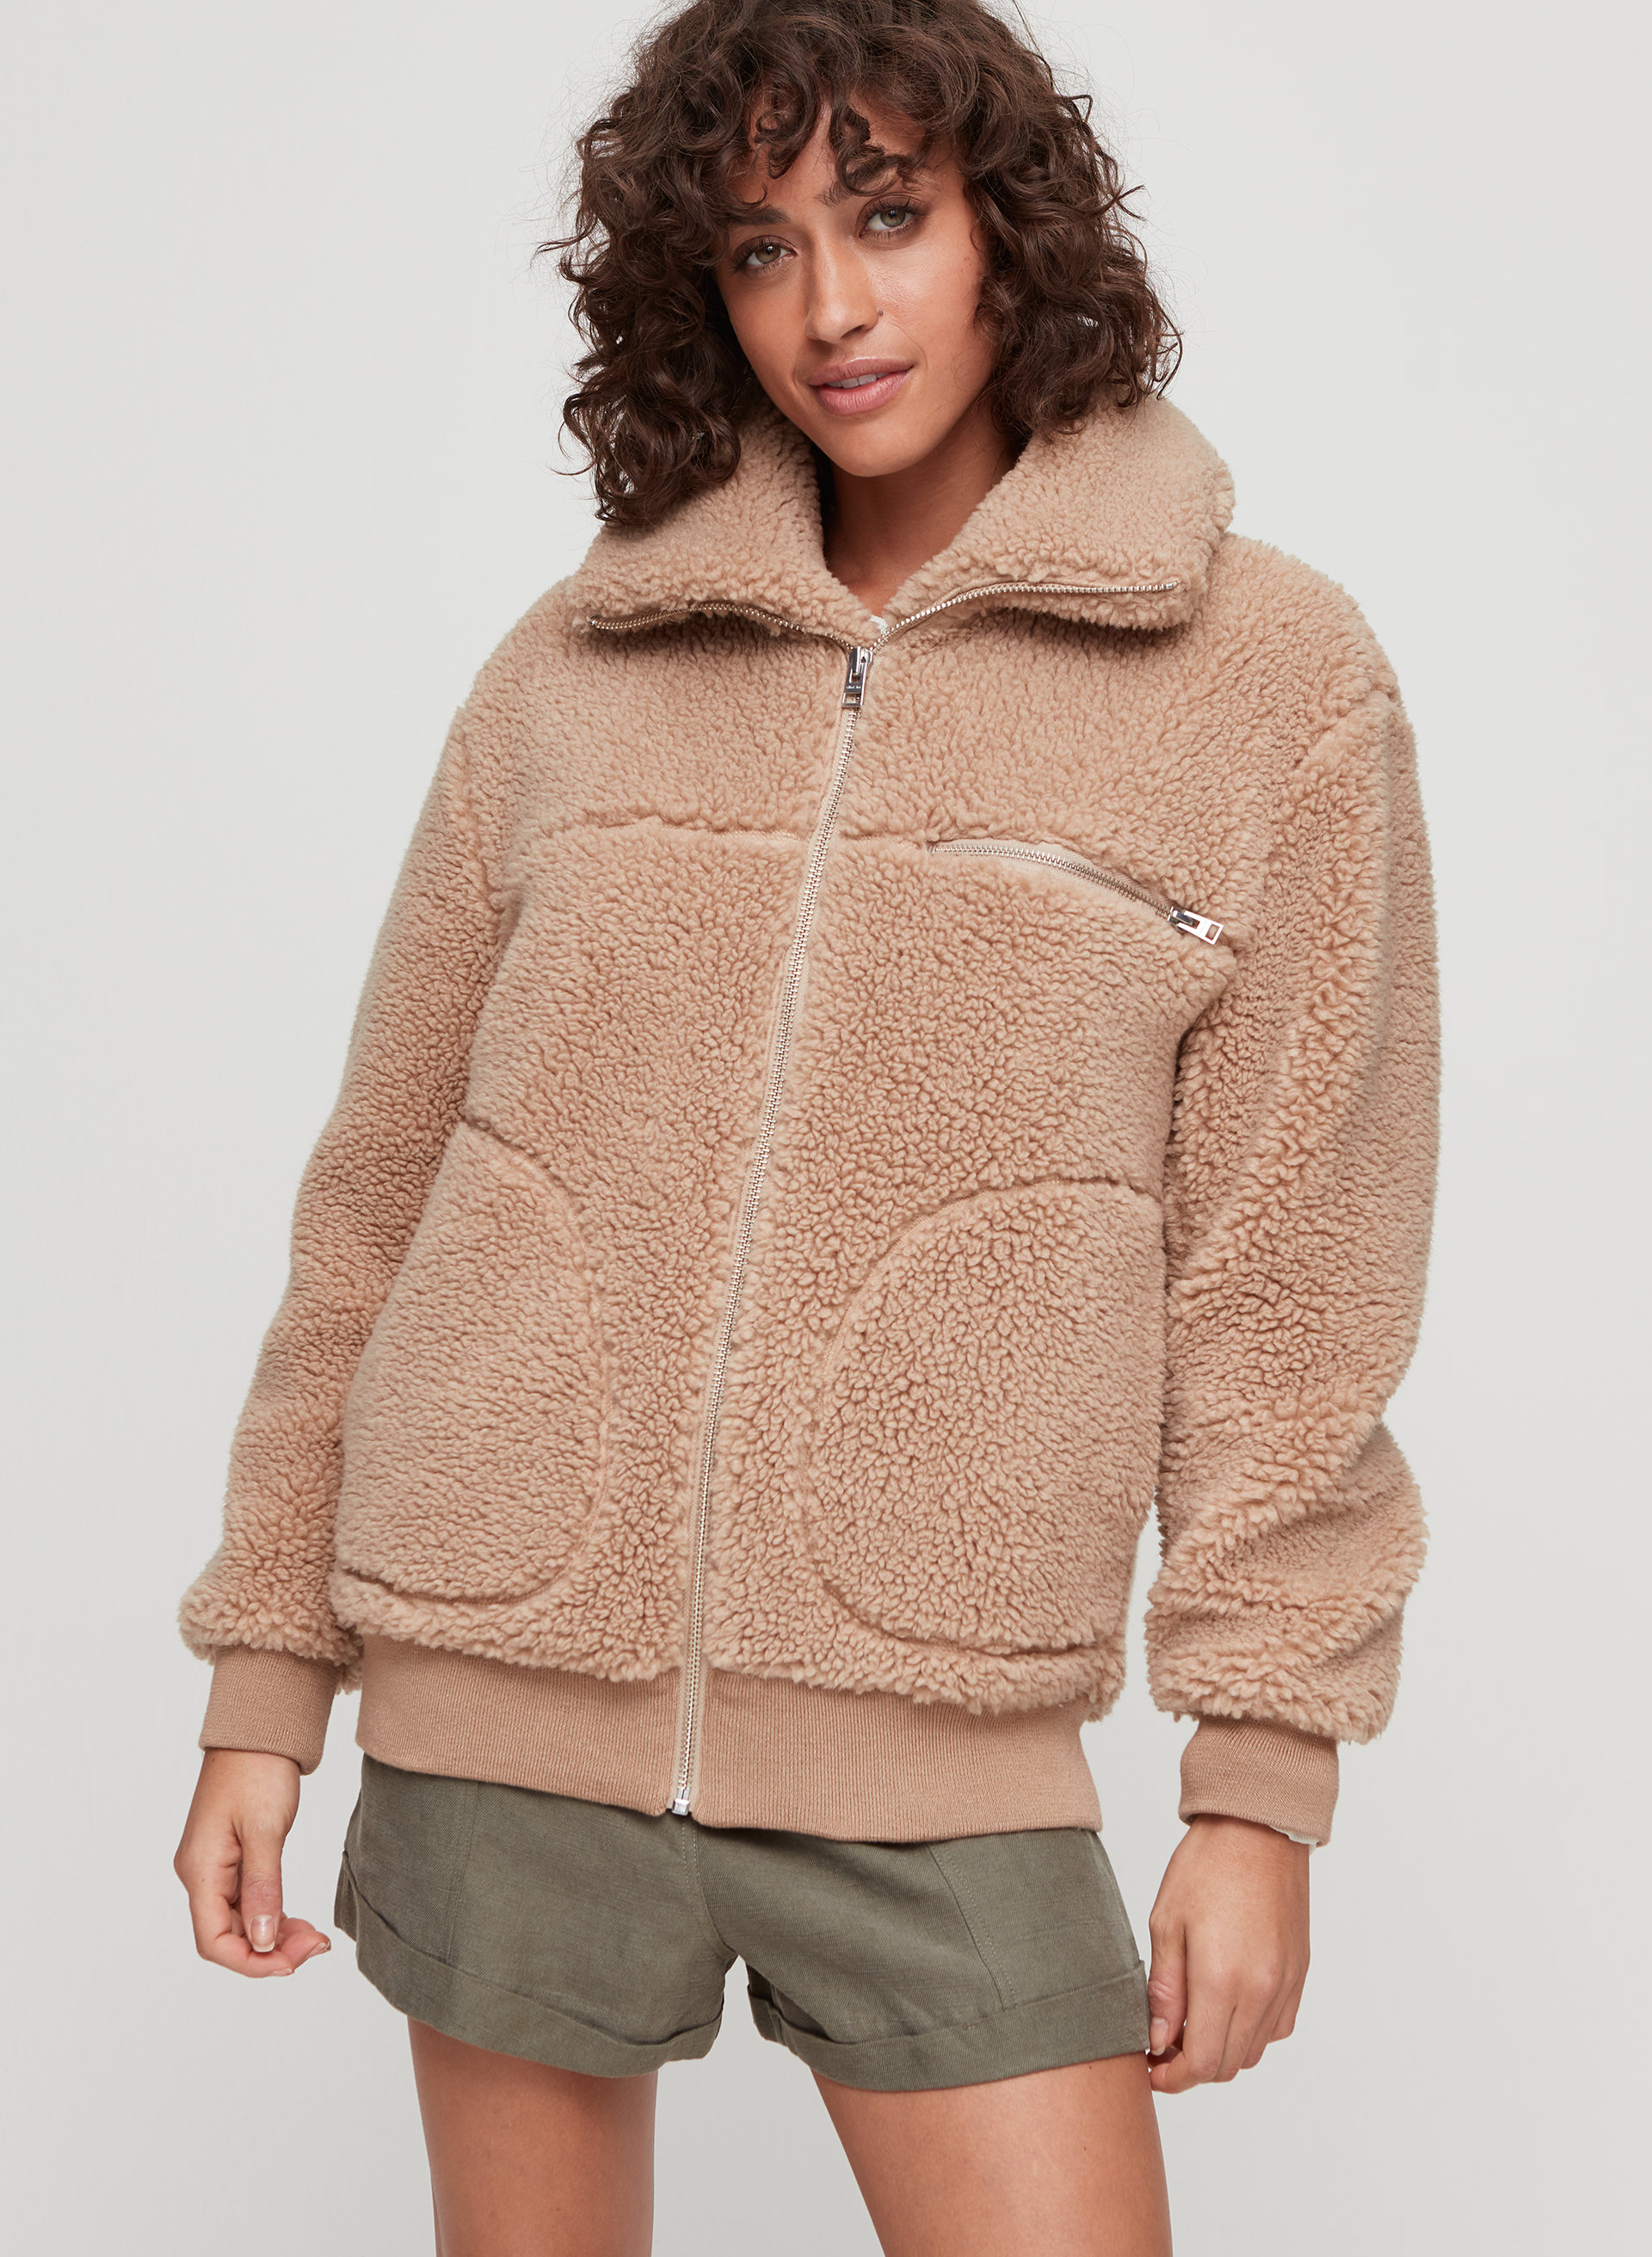 528ea4cac Wilfred Free THE TEDDY JACKET   Aritzia US